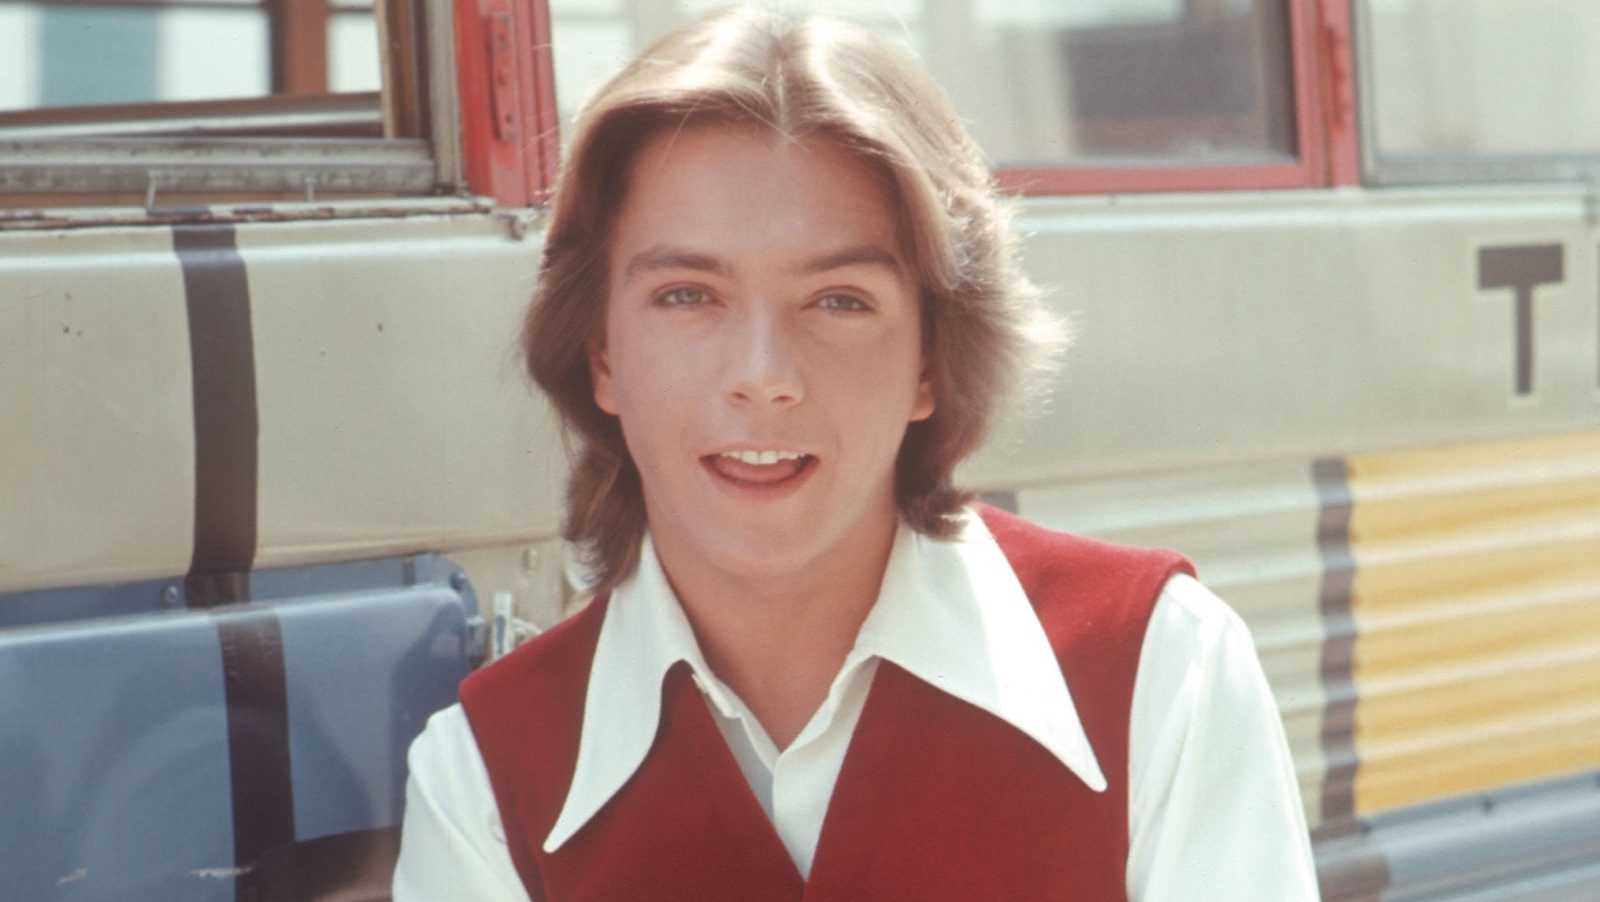 David CassidyDavid Cassidy starred as Keith Partridge in The Partridge Family from 1970-1974. His hair is the most 70s thing we've ever seen!